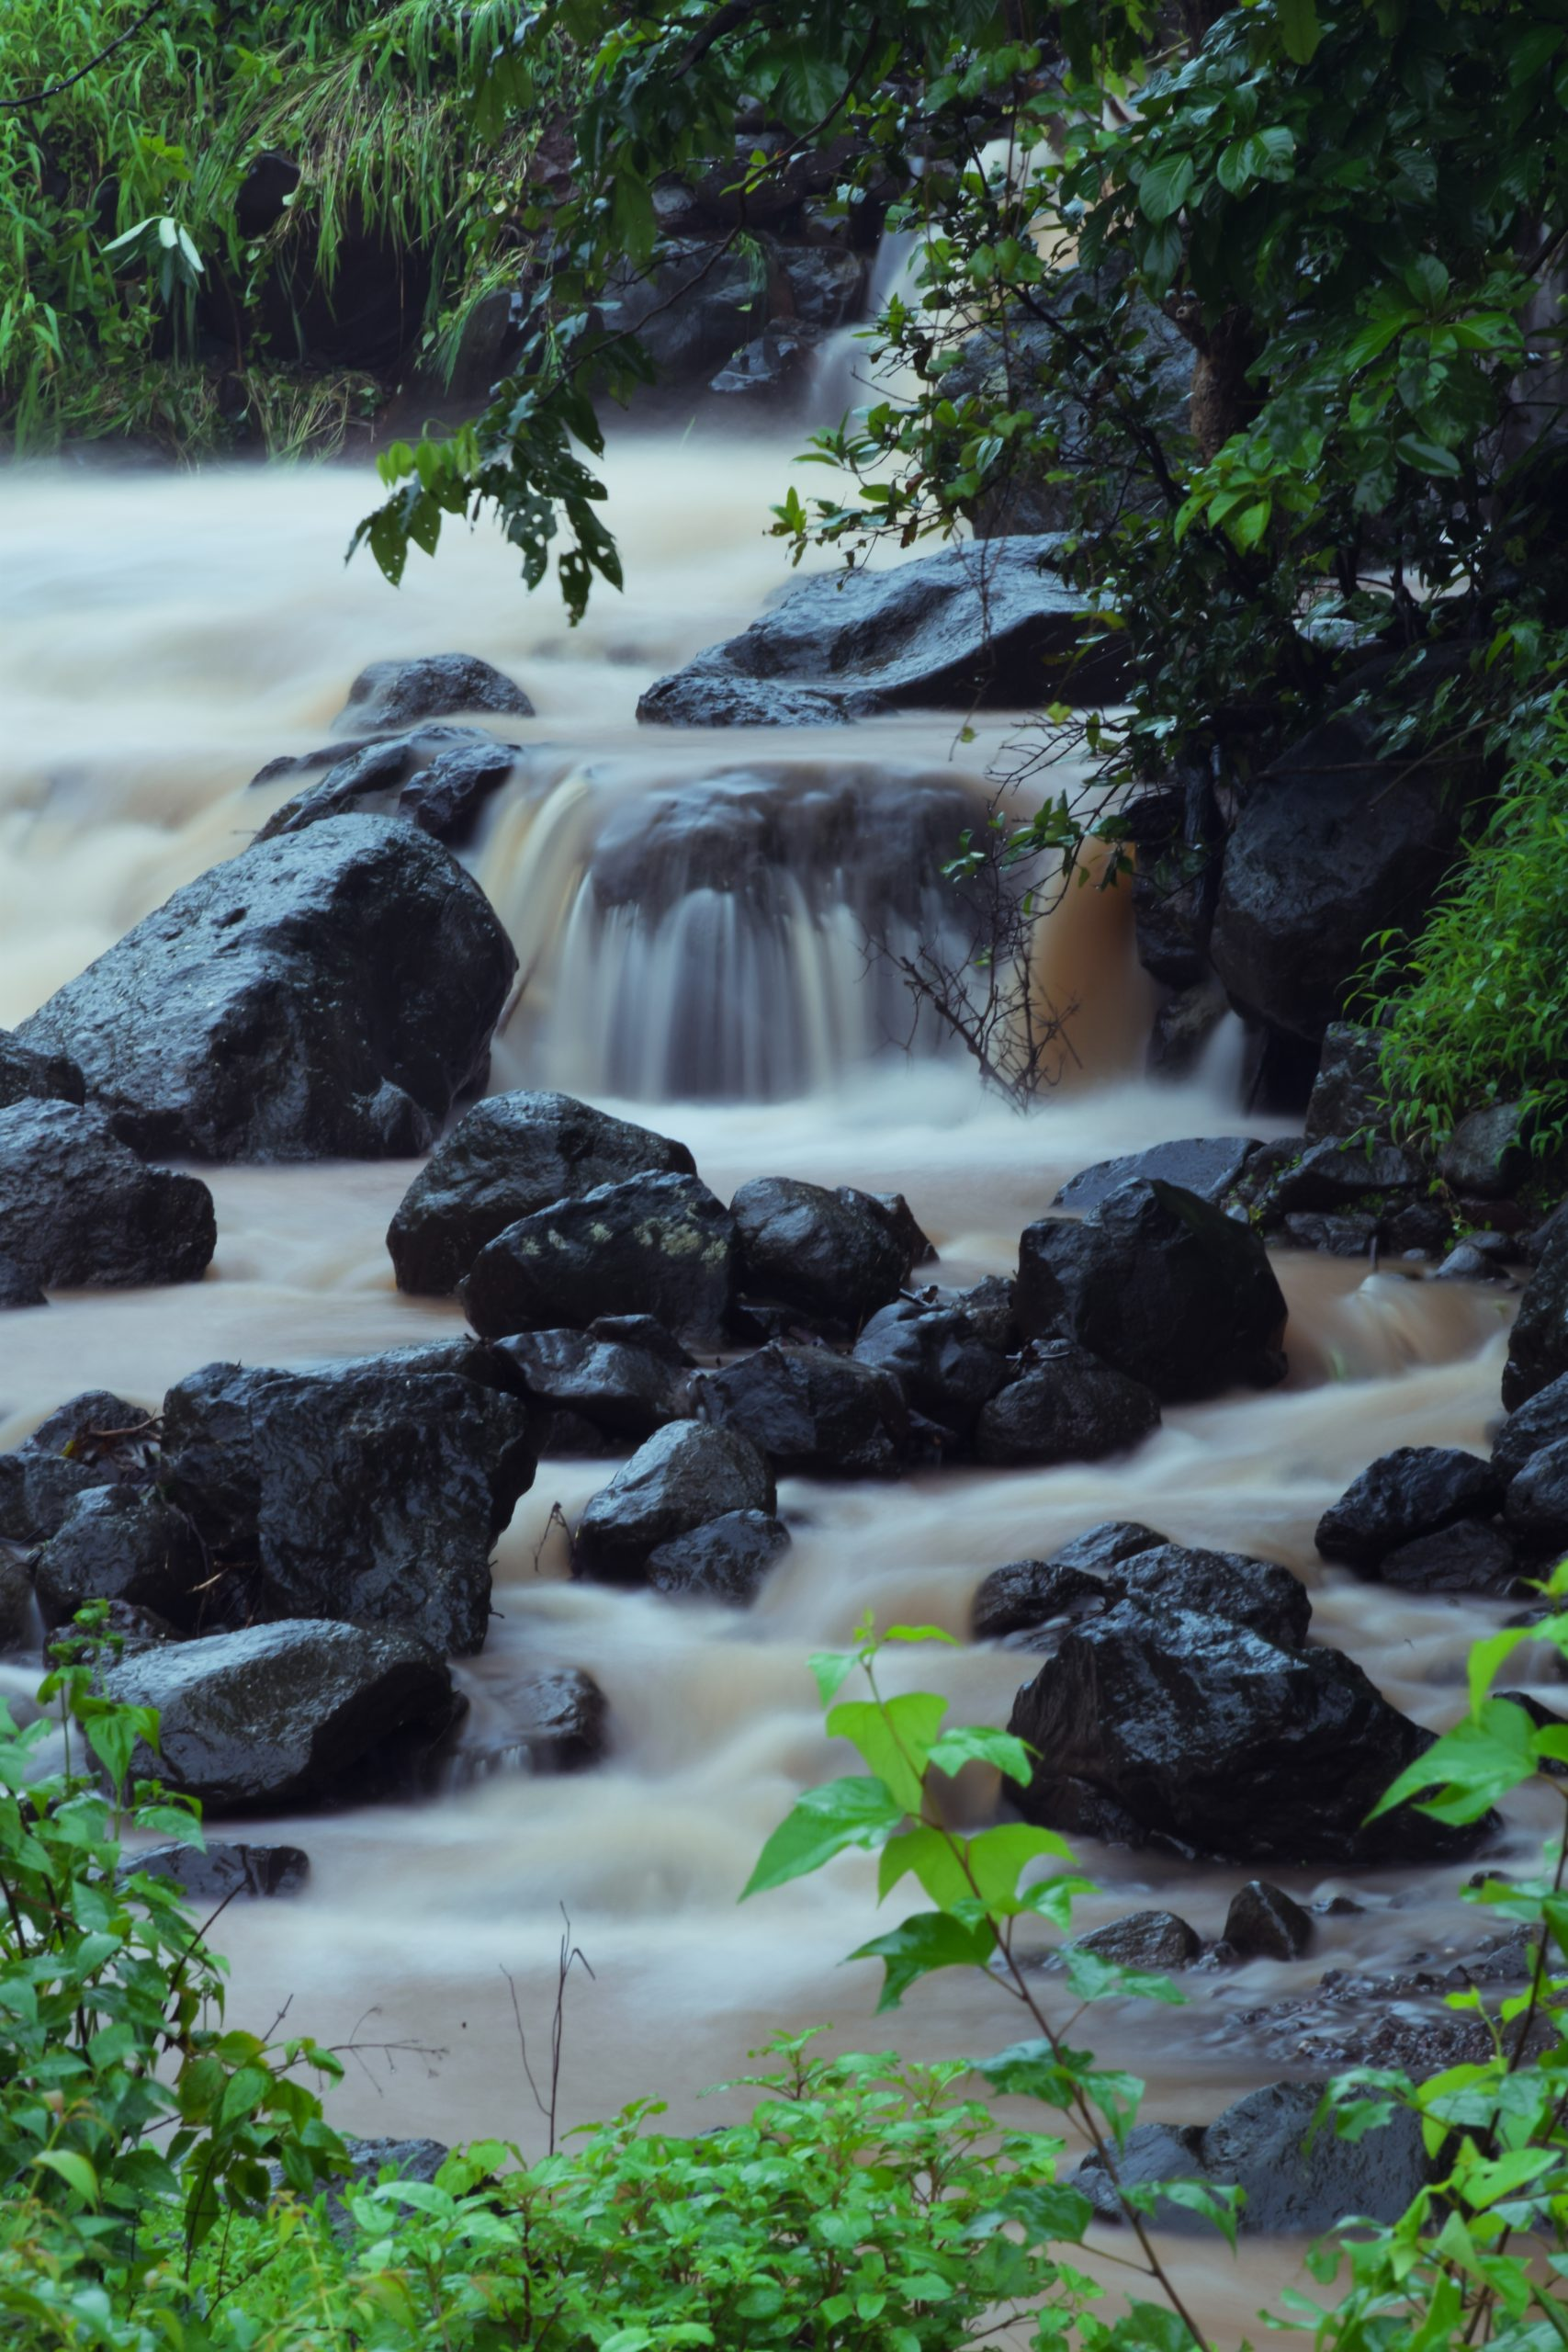 water flowing through the rocks